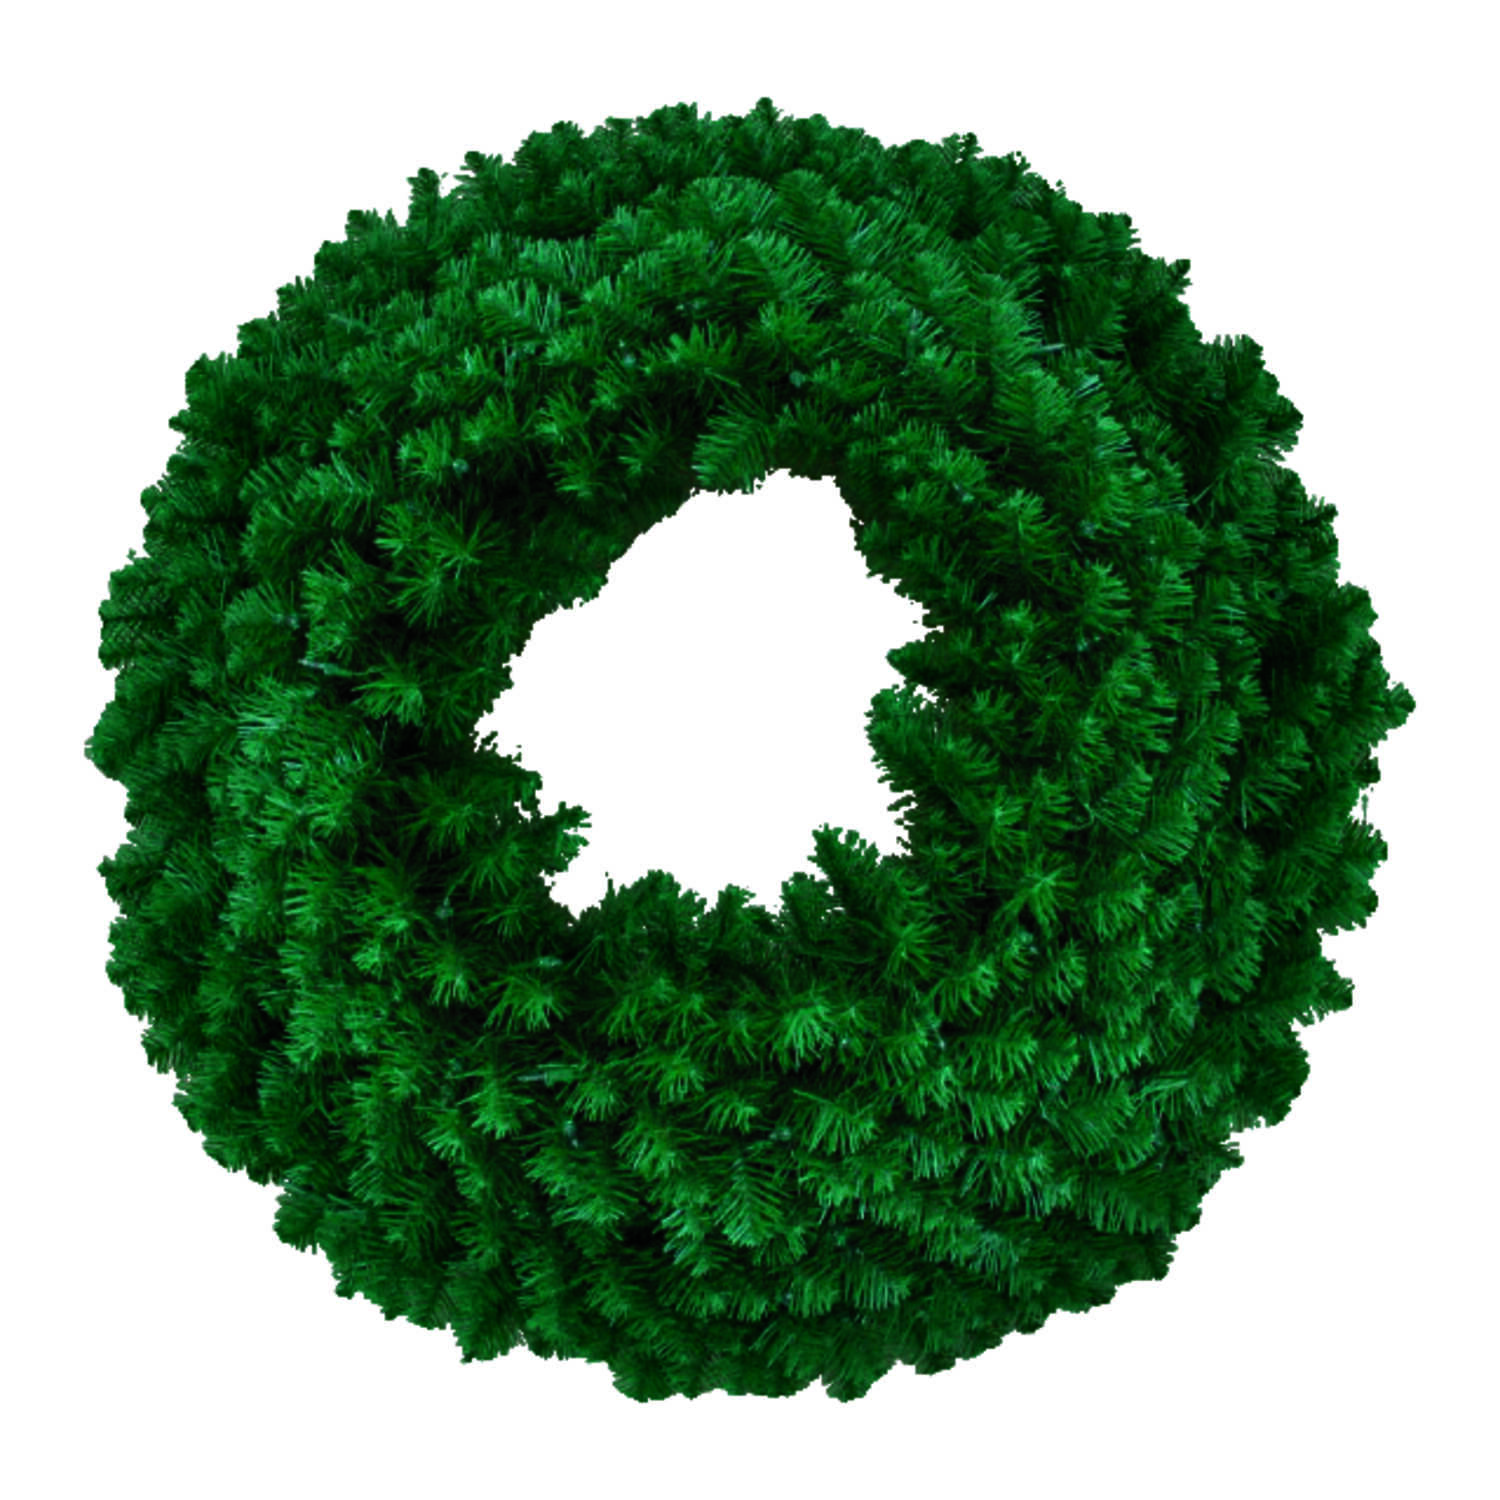 J & J Seasonal  Green  Masterpiece Wreath  36 in. Dia.